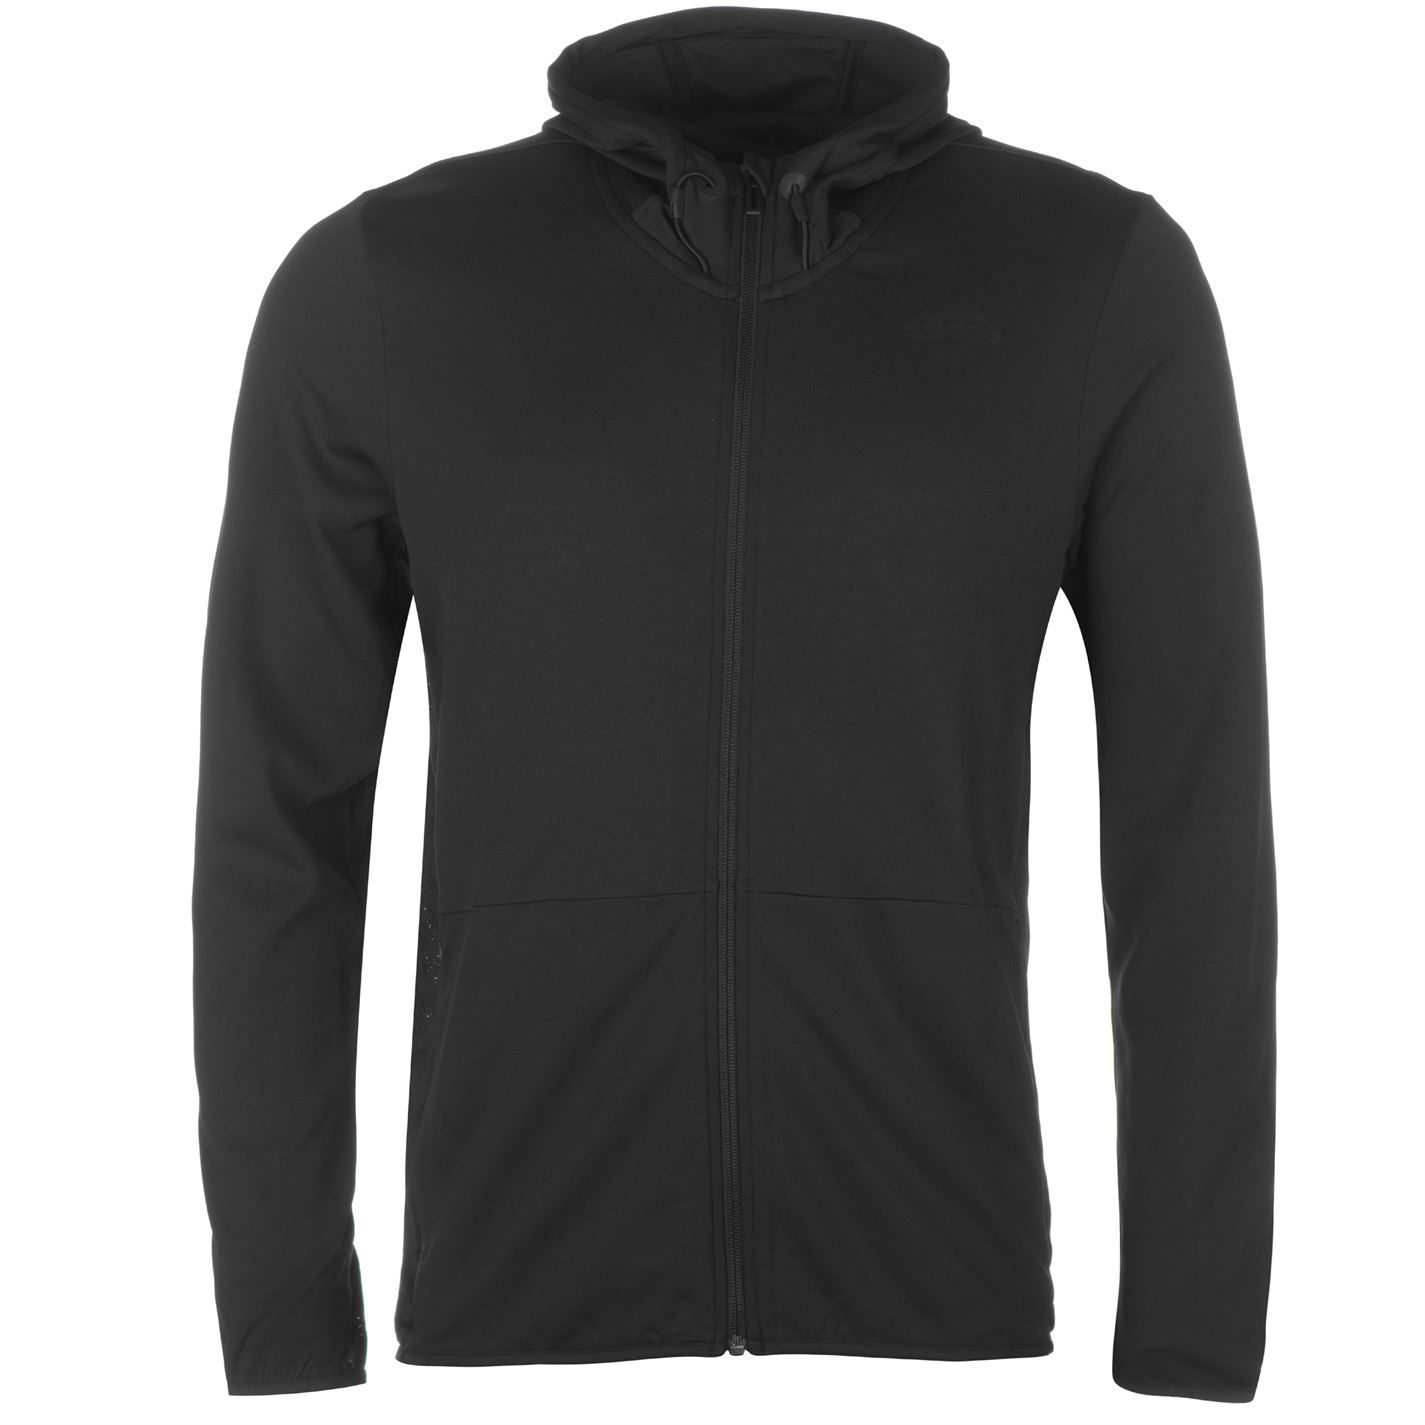 Adidas Climacool Entra Entra Entra neHommes t Full Zip Hoody Sweat à Capuche Sweat Pull Top 715412